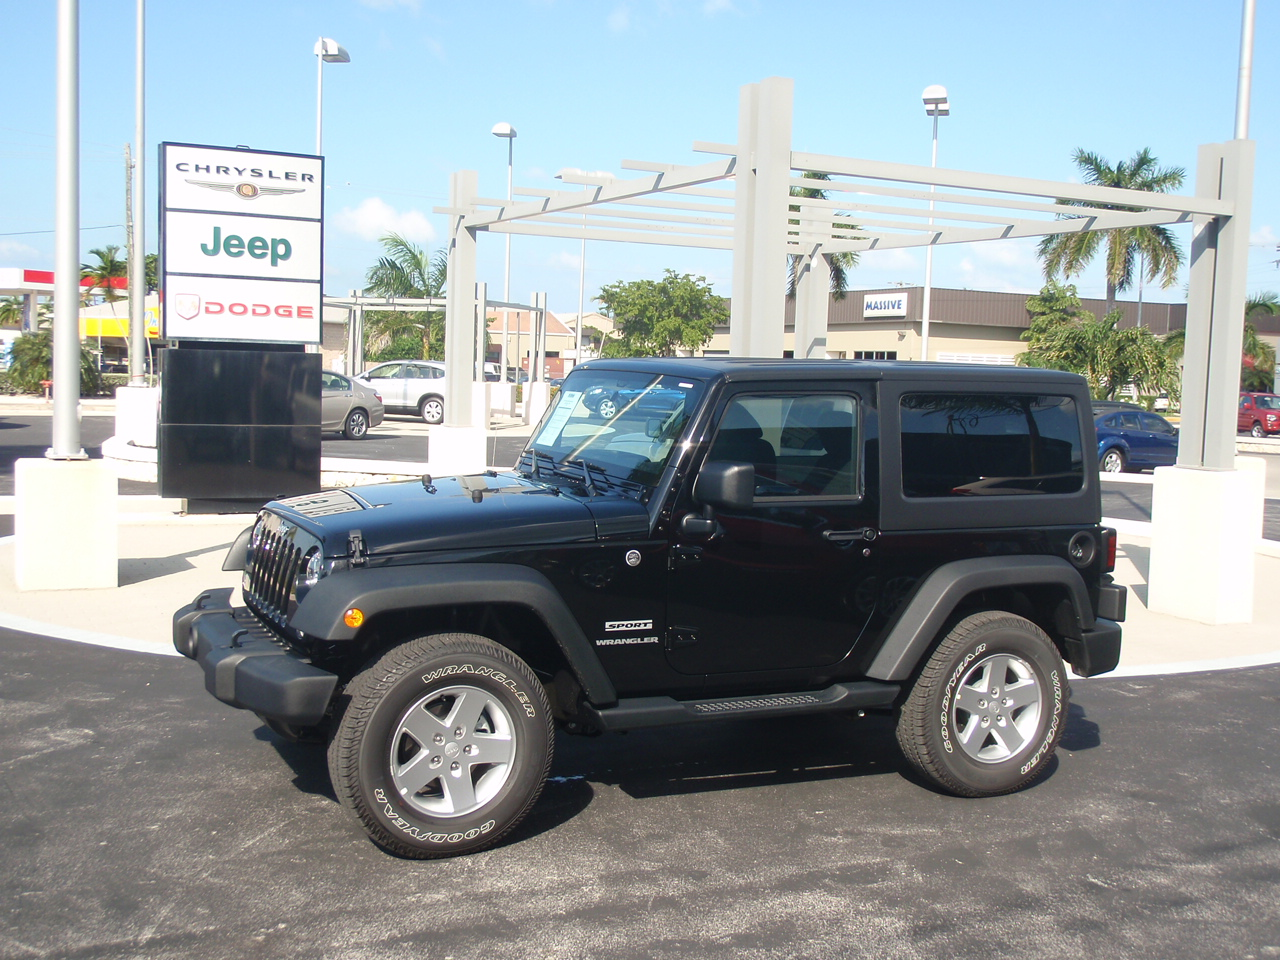 BLACK Jeep Wrangler 2 Door Hard Top 4×4 Vehicle Specifications free download image